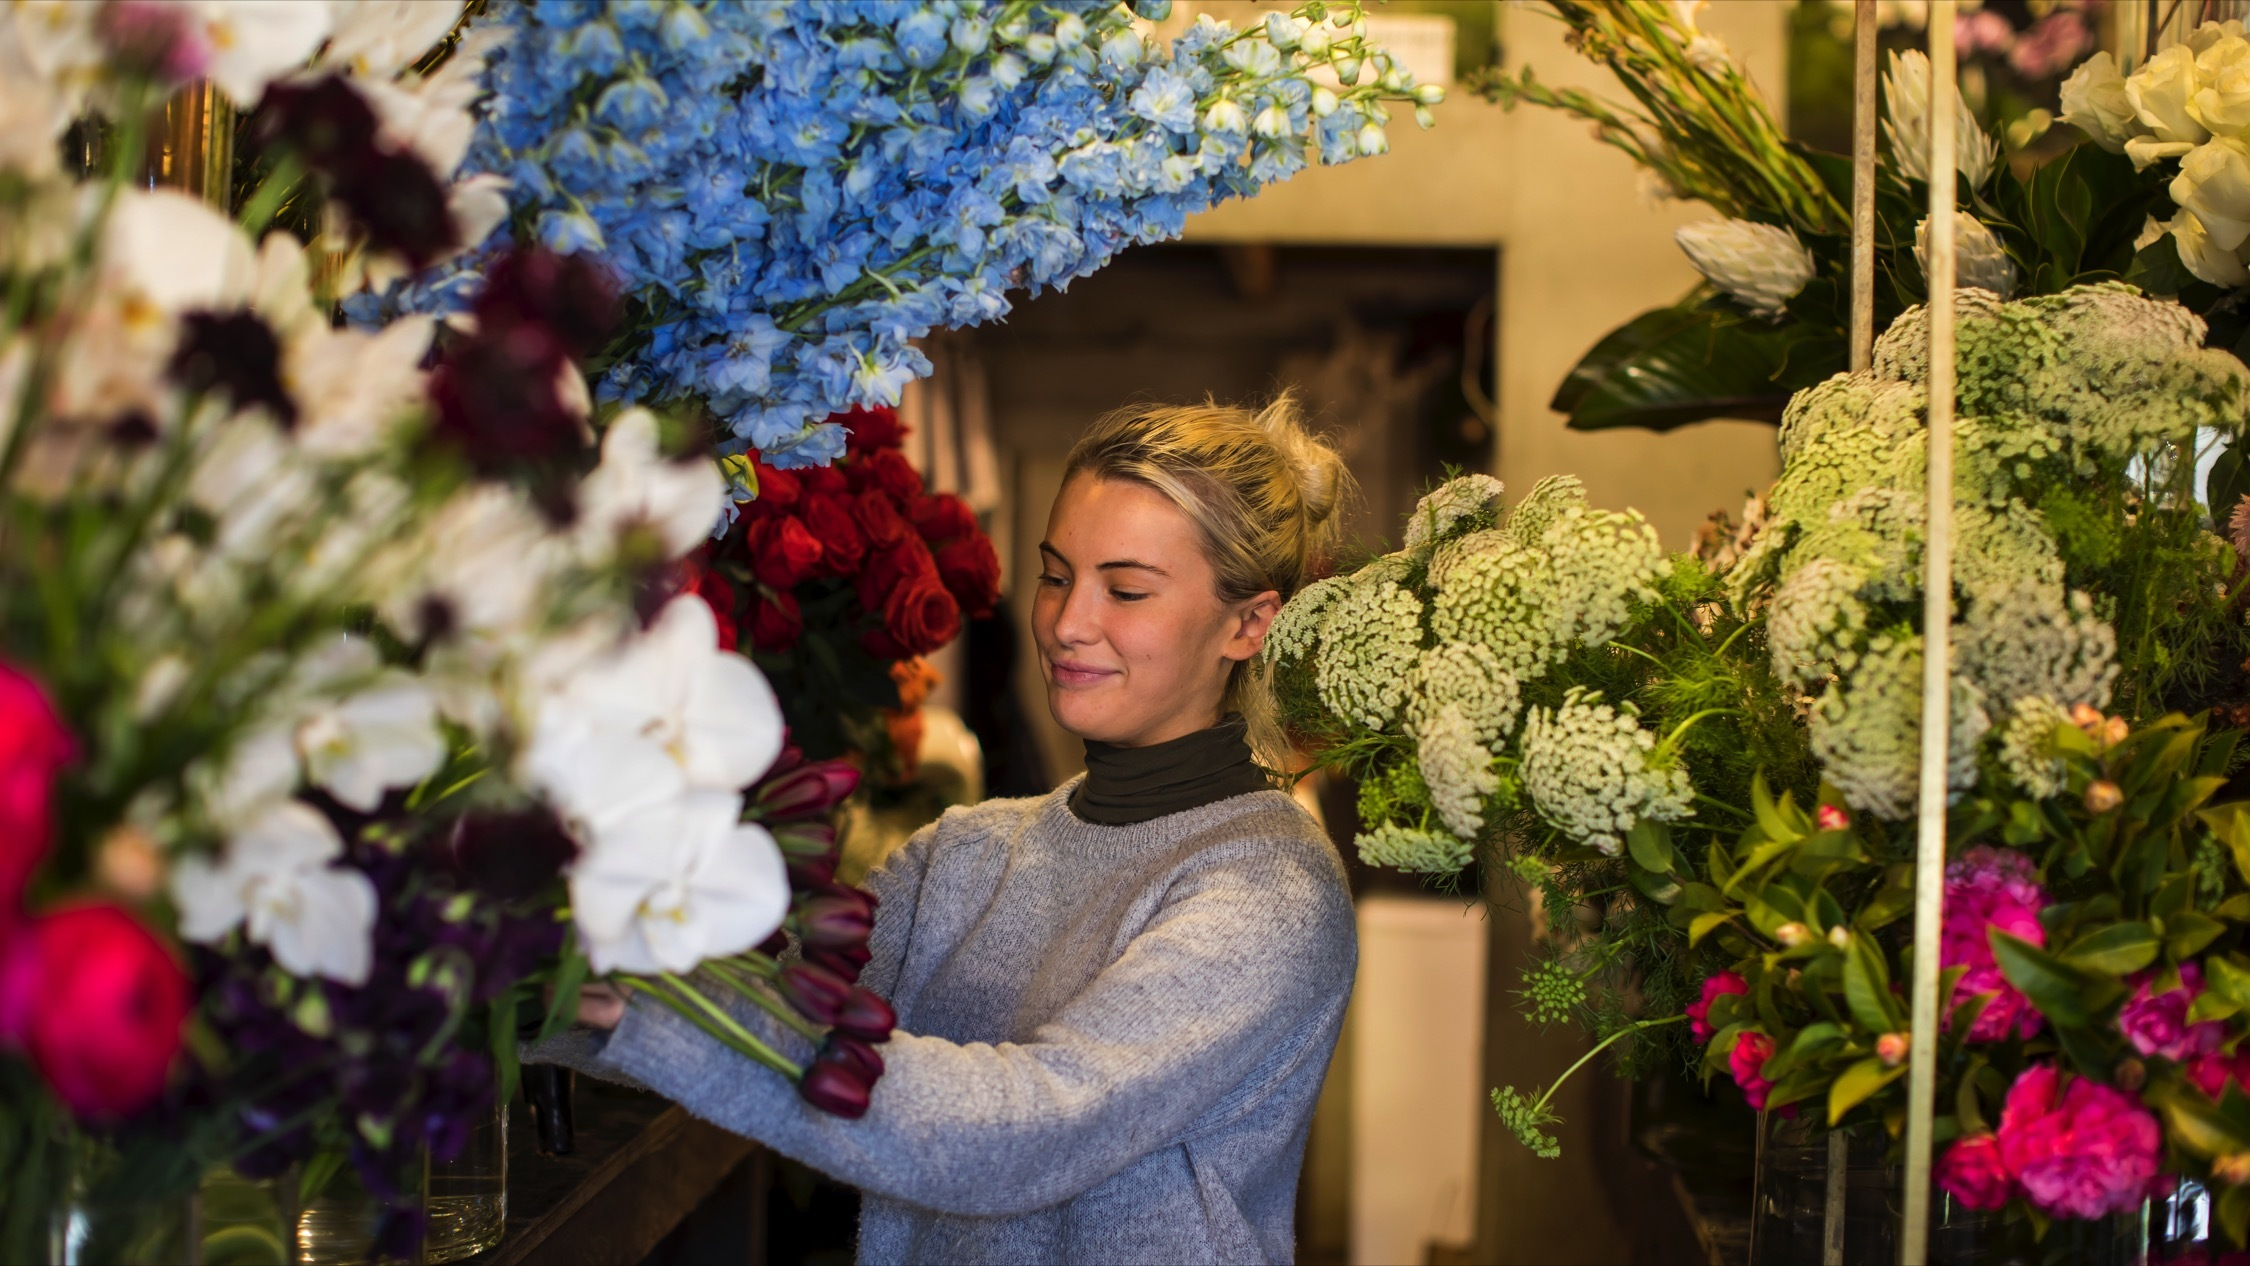 Person picking flowers at Grandiflora Florists